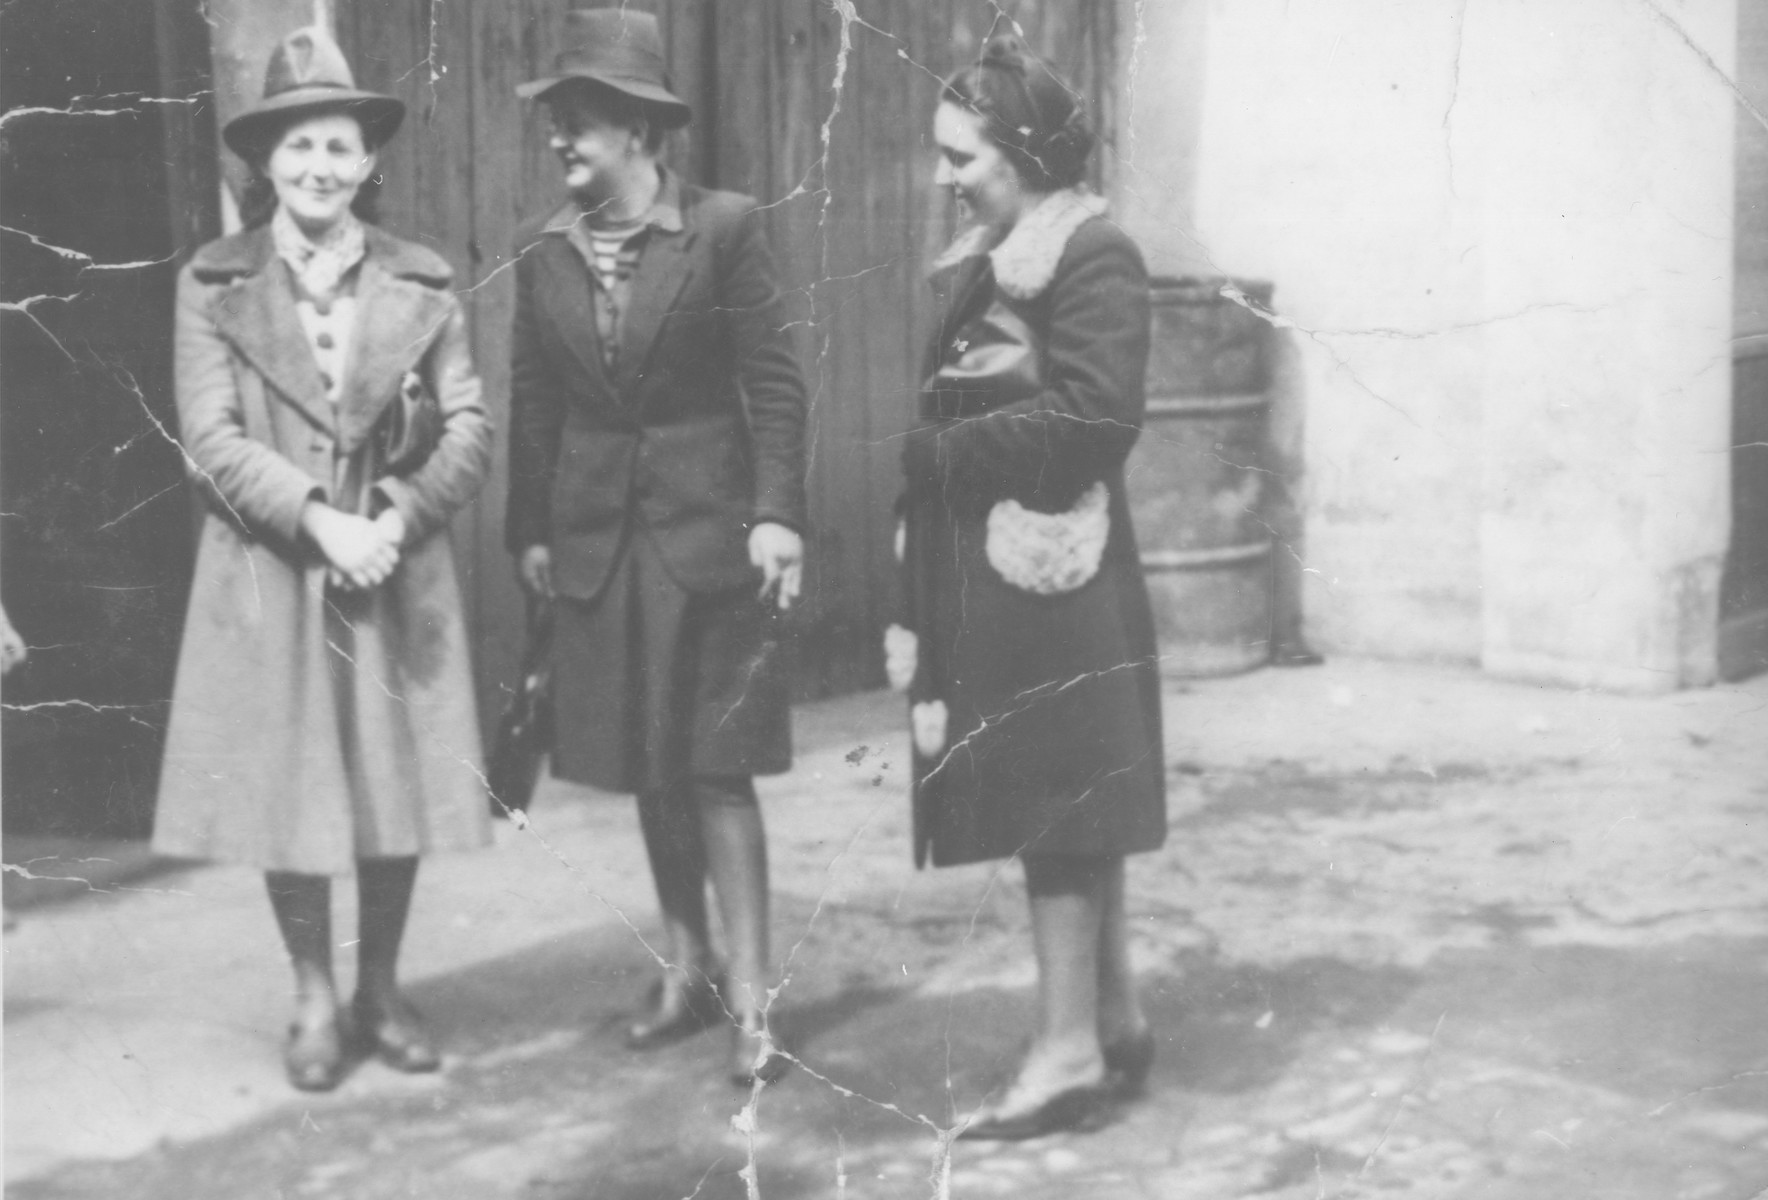 Three Jewish women who are posing as Poles, stand in a courtyard on the Aryan side of Warsaw.  Pictured are Fela Katz (center), the donor's sister, with her cousin, Franka (left) and a friend, Lola Bleiberg (right).